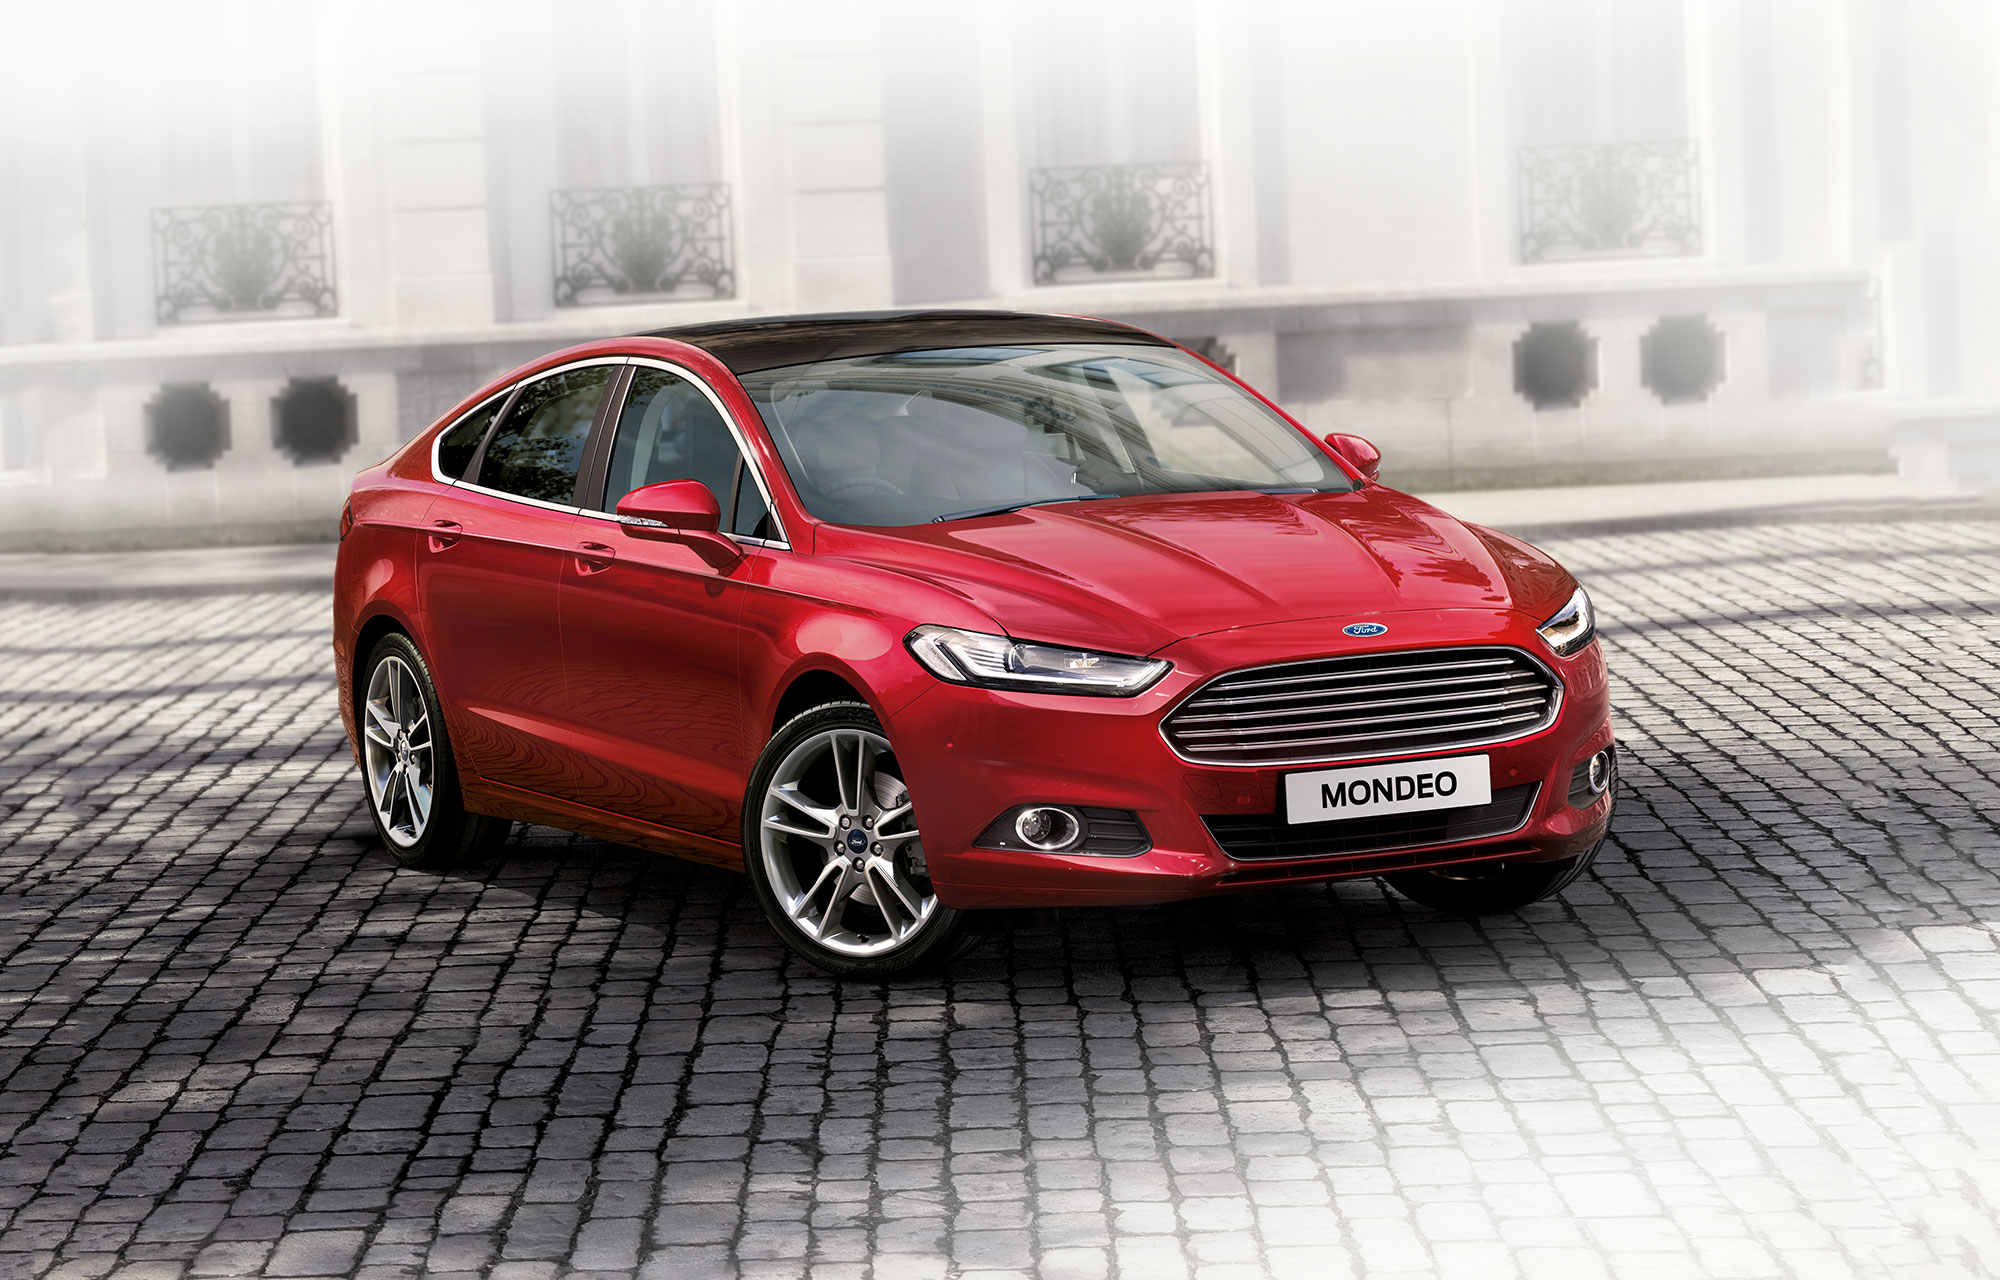 Ford Mondeo Continental Irish Car of the Year 2016